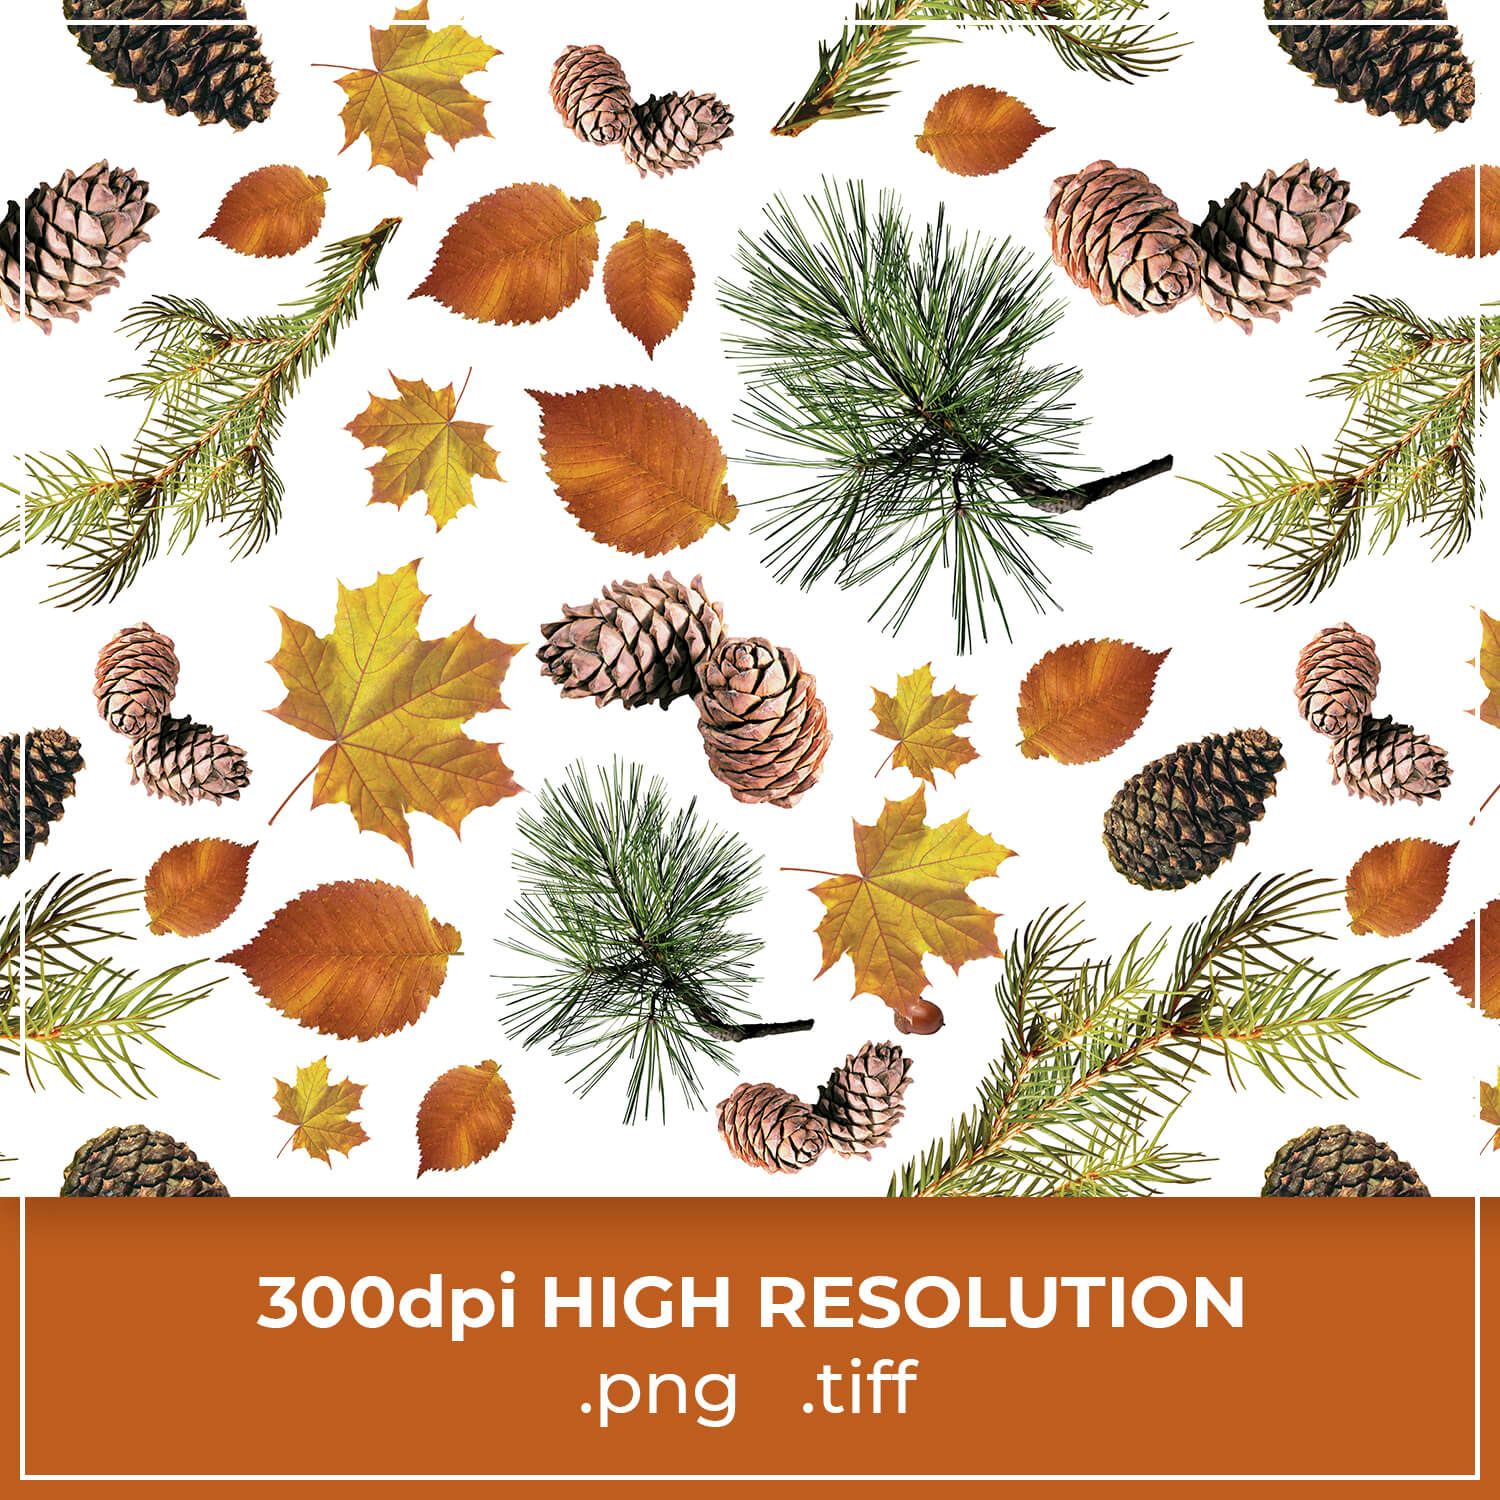 Leaves and Cones Autumn Pattern cover image.